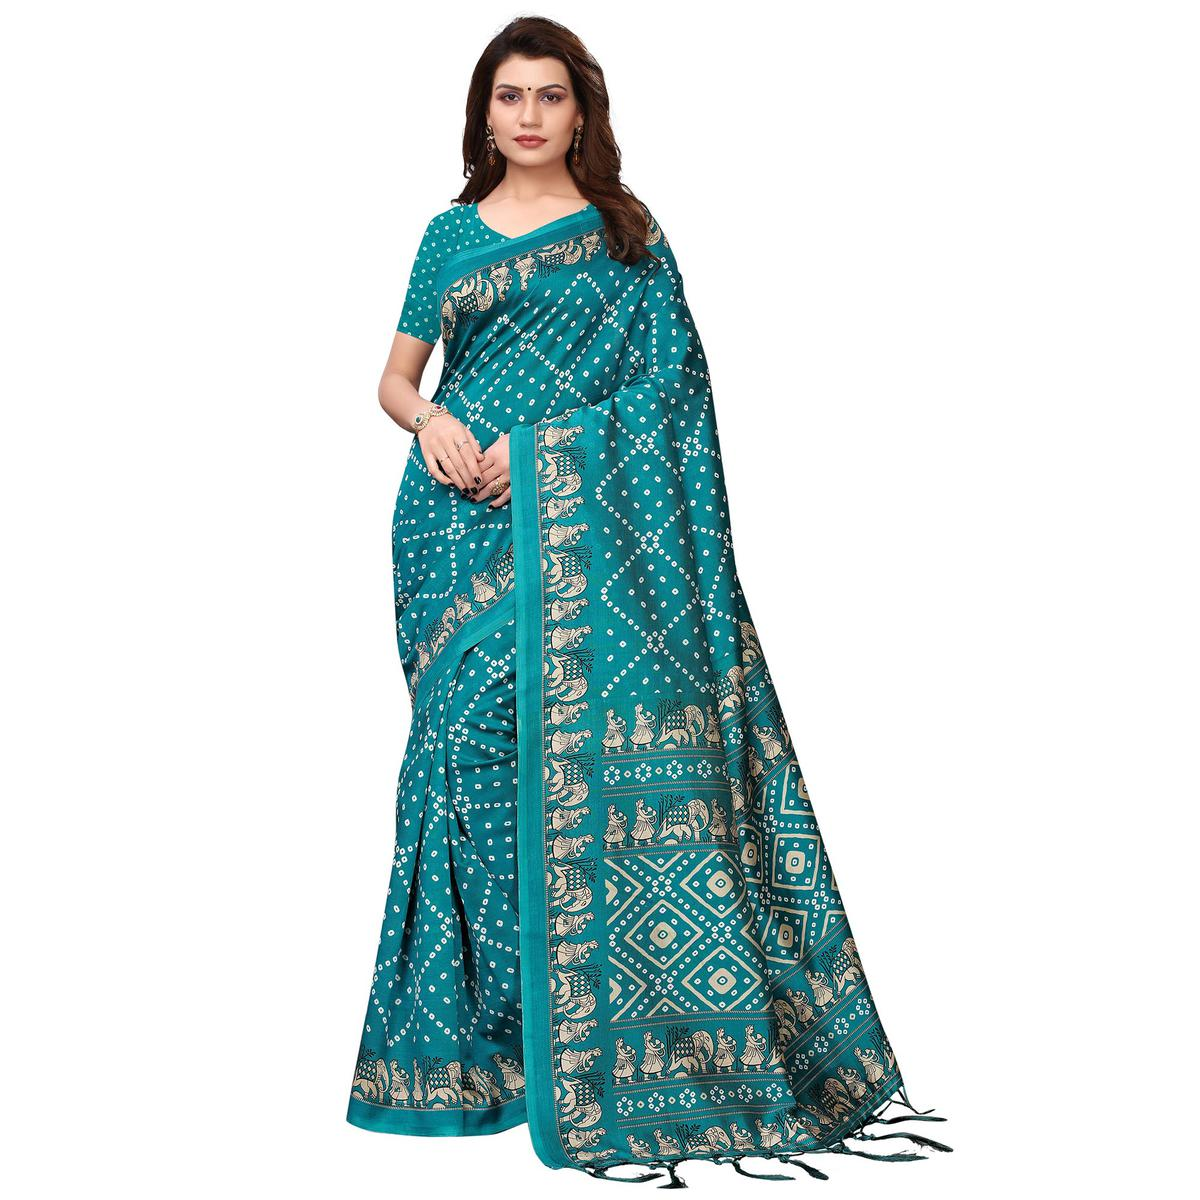 Beautiful Rama Green Colored Festive Wear Printed Art Silk Saree